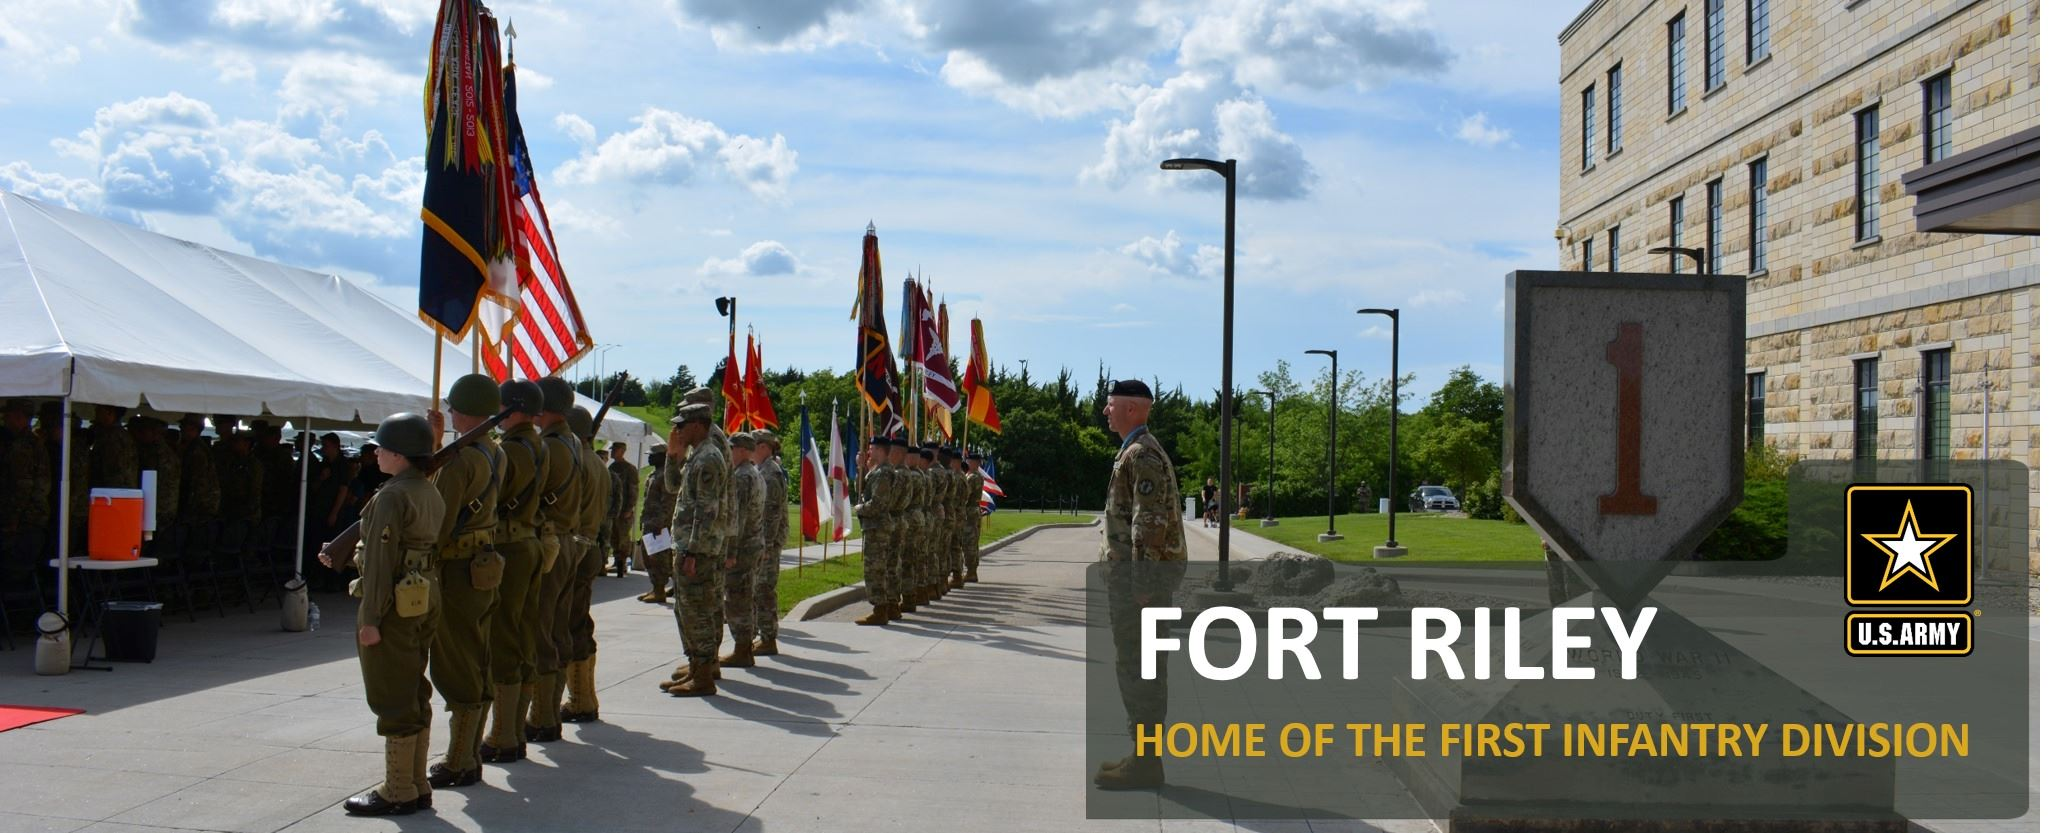 photo of soldiers in formation at Fort Riley